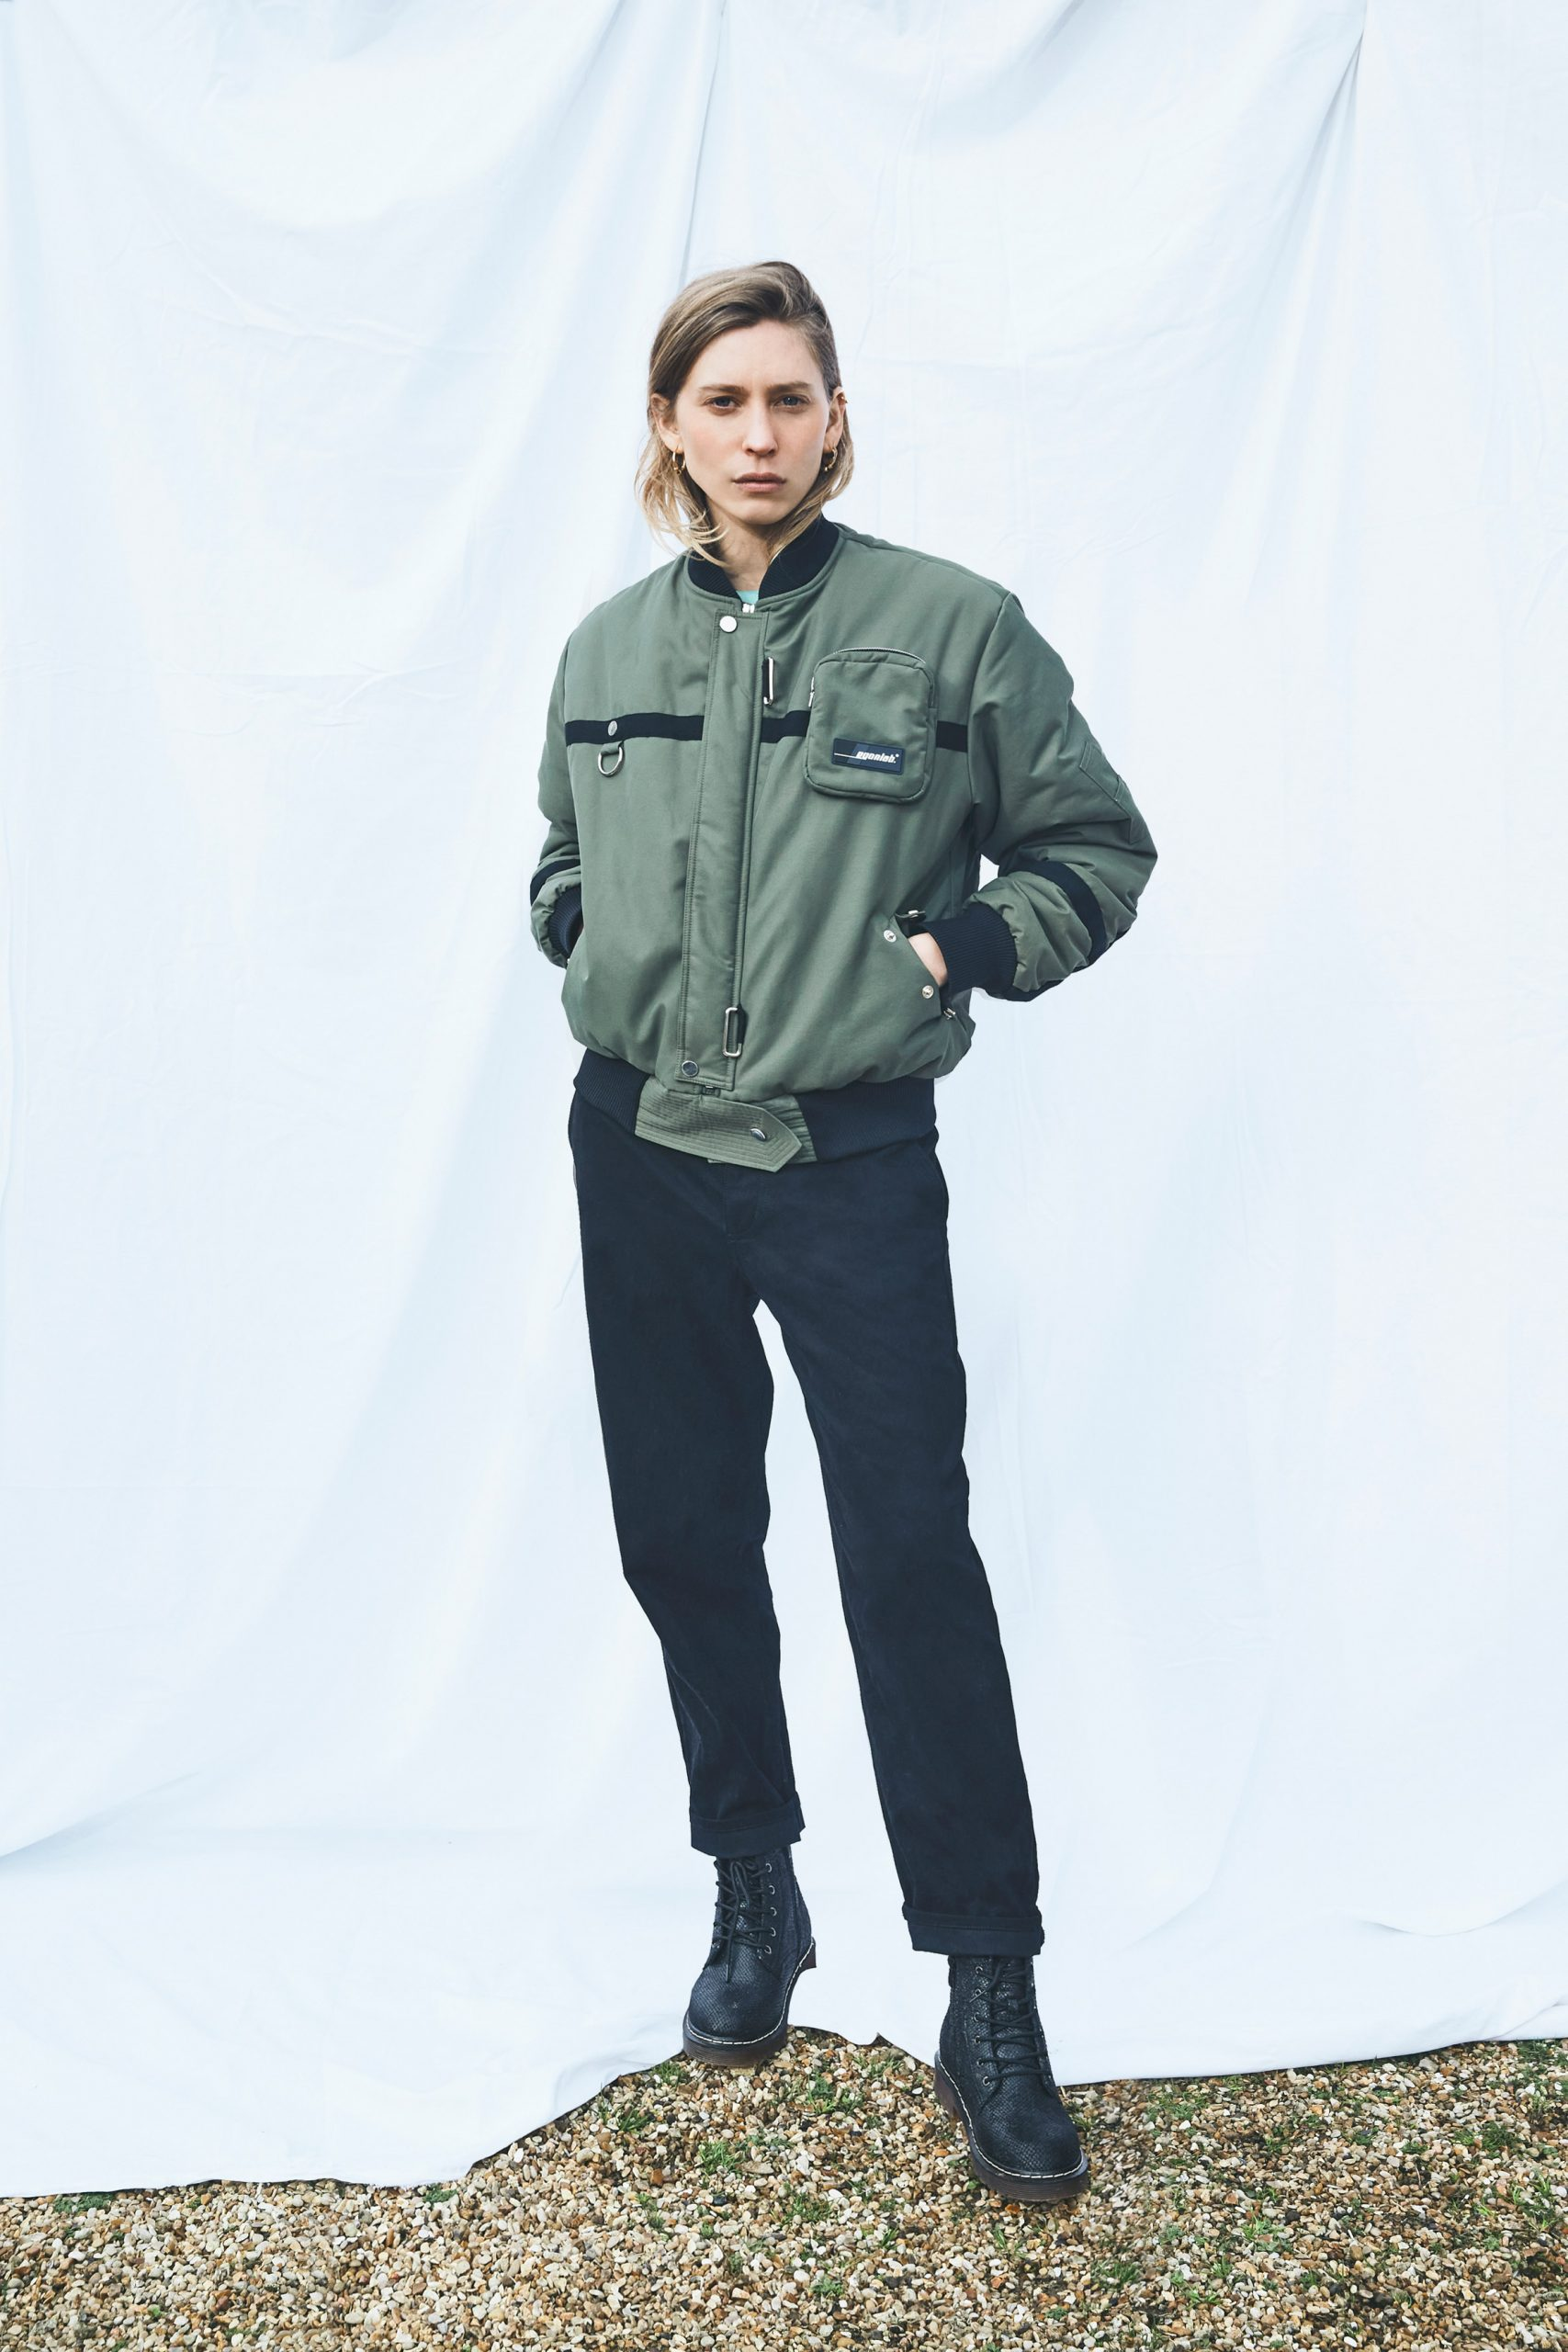 Green bomber jacket by EgonLab and Post Carbon Lab